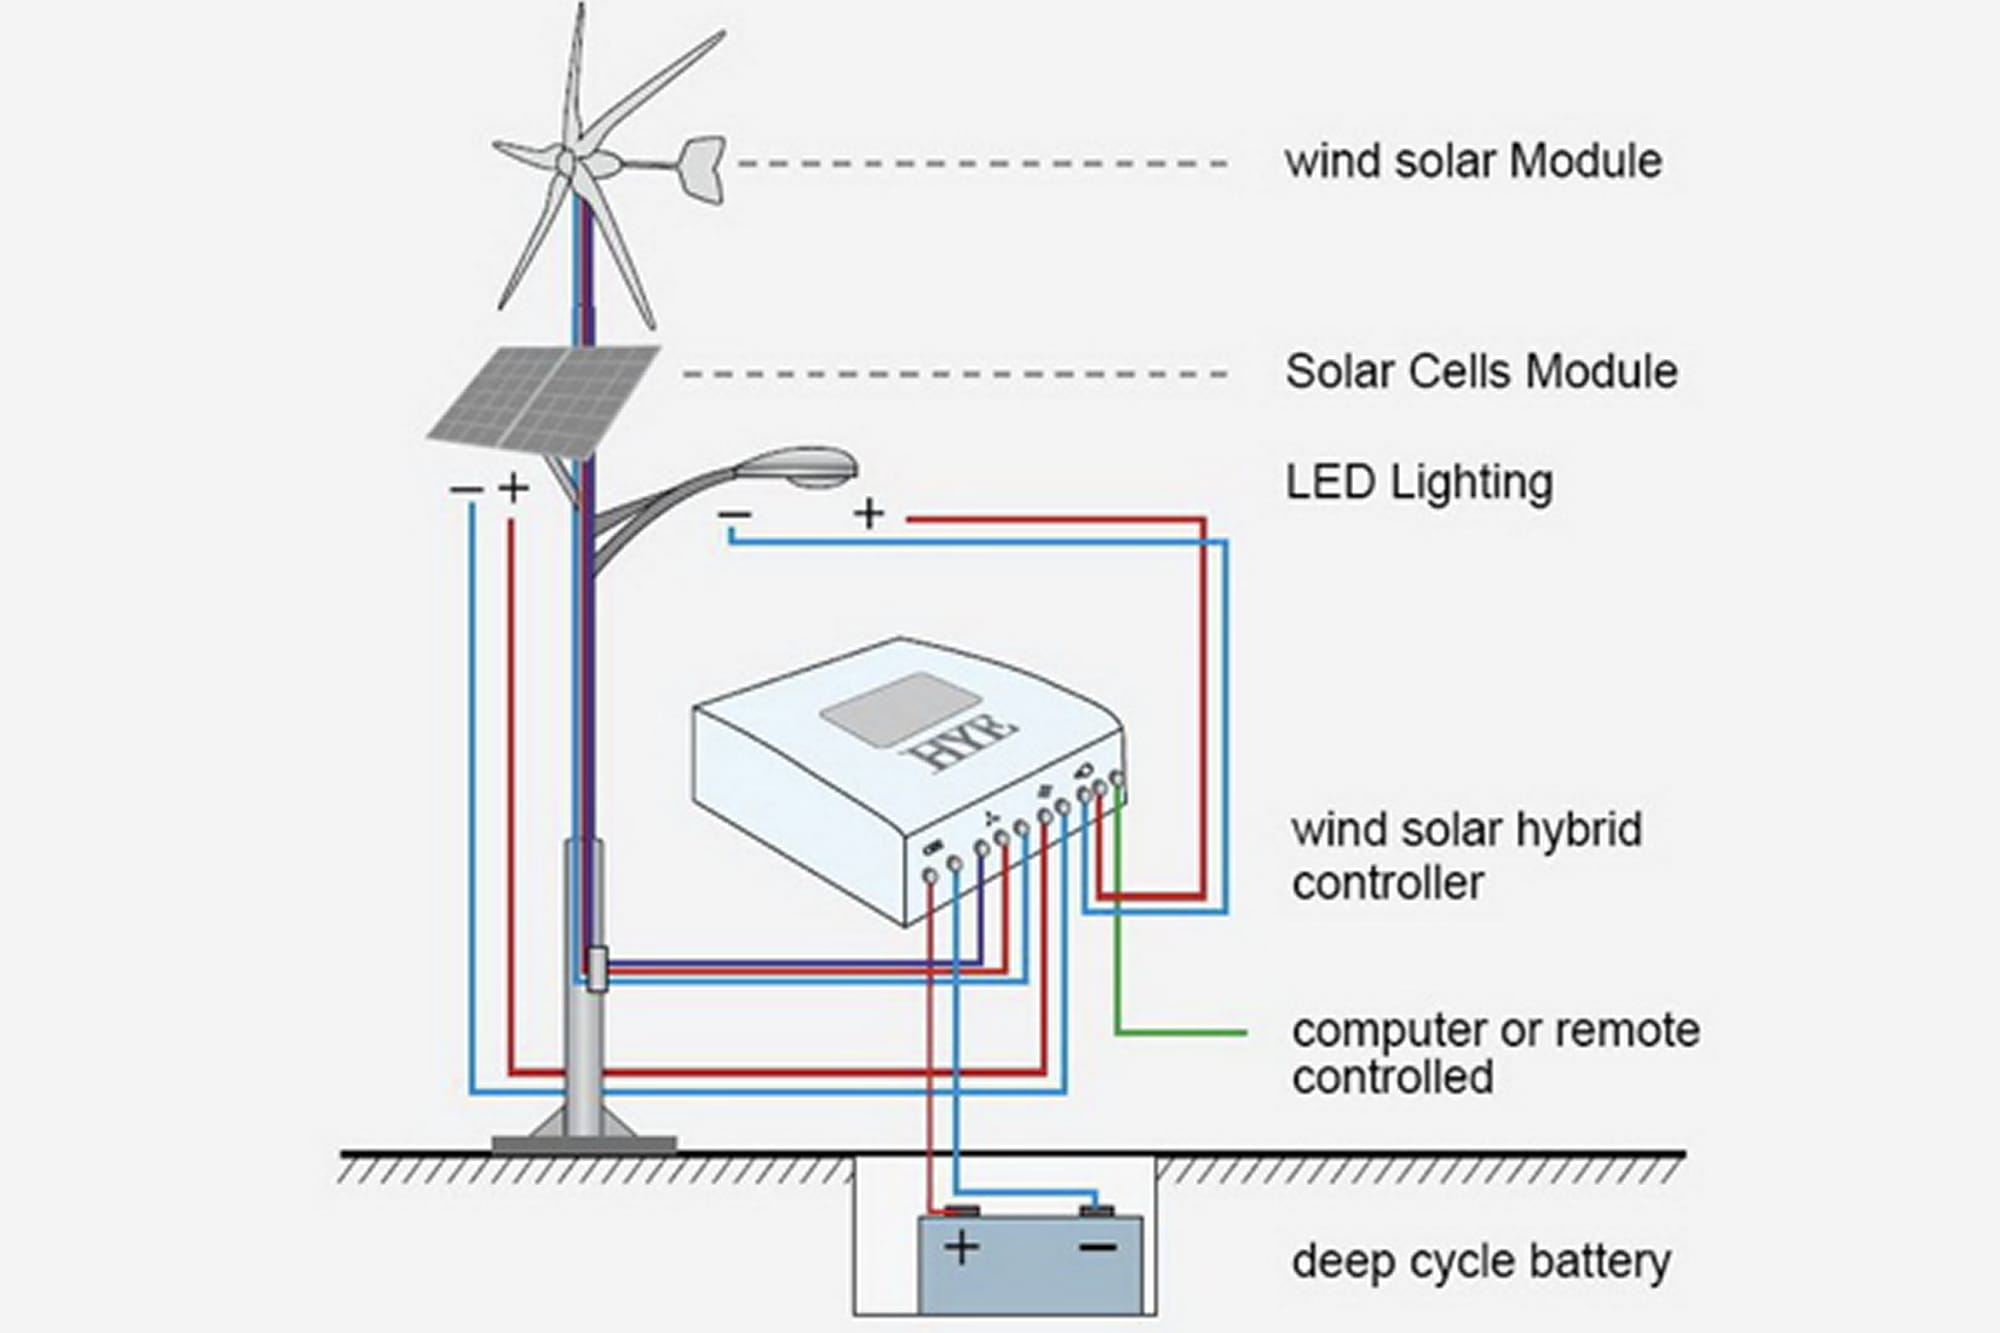 Wind Solar Schematic Wiring Diagram Just Another Blog Of A Panel Street Light Diagrams Source Rh 16 6 Ludwiglab De For Homes Installation